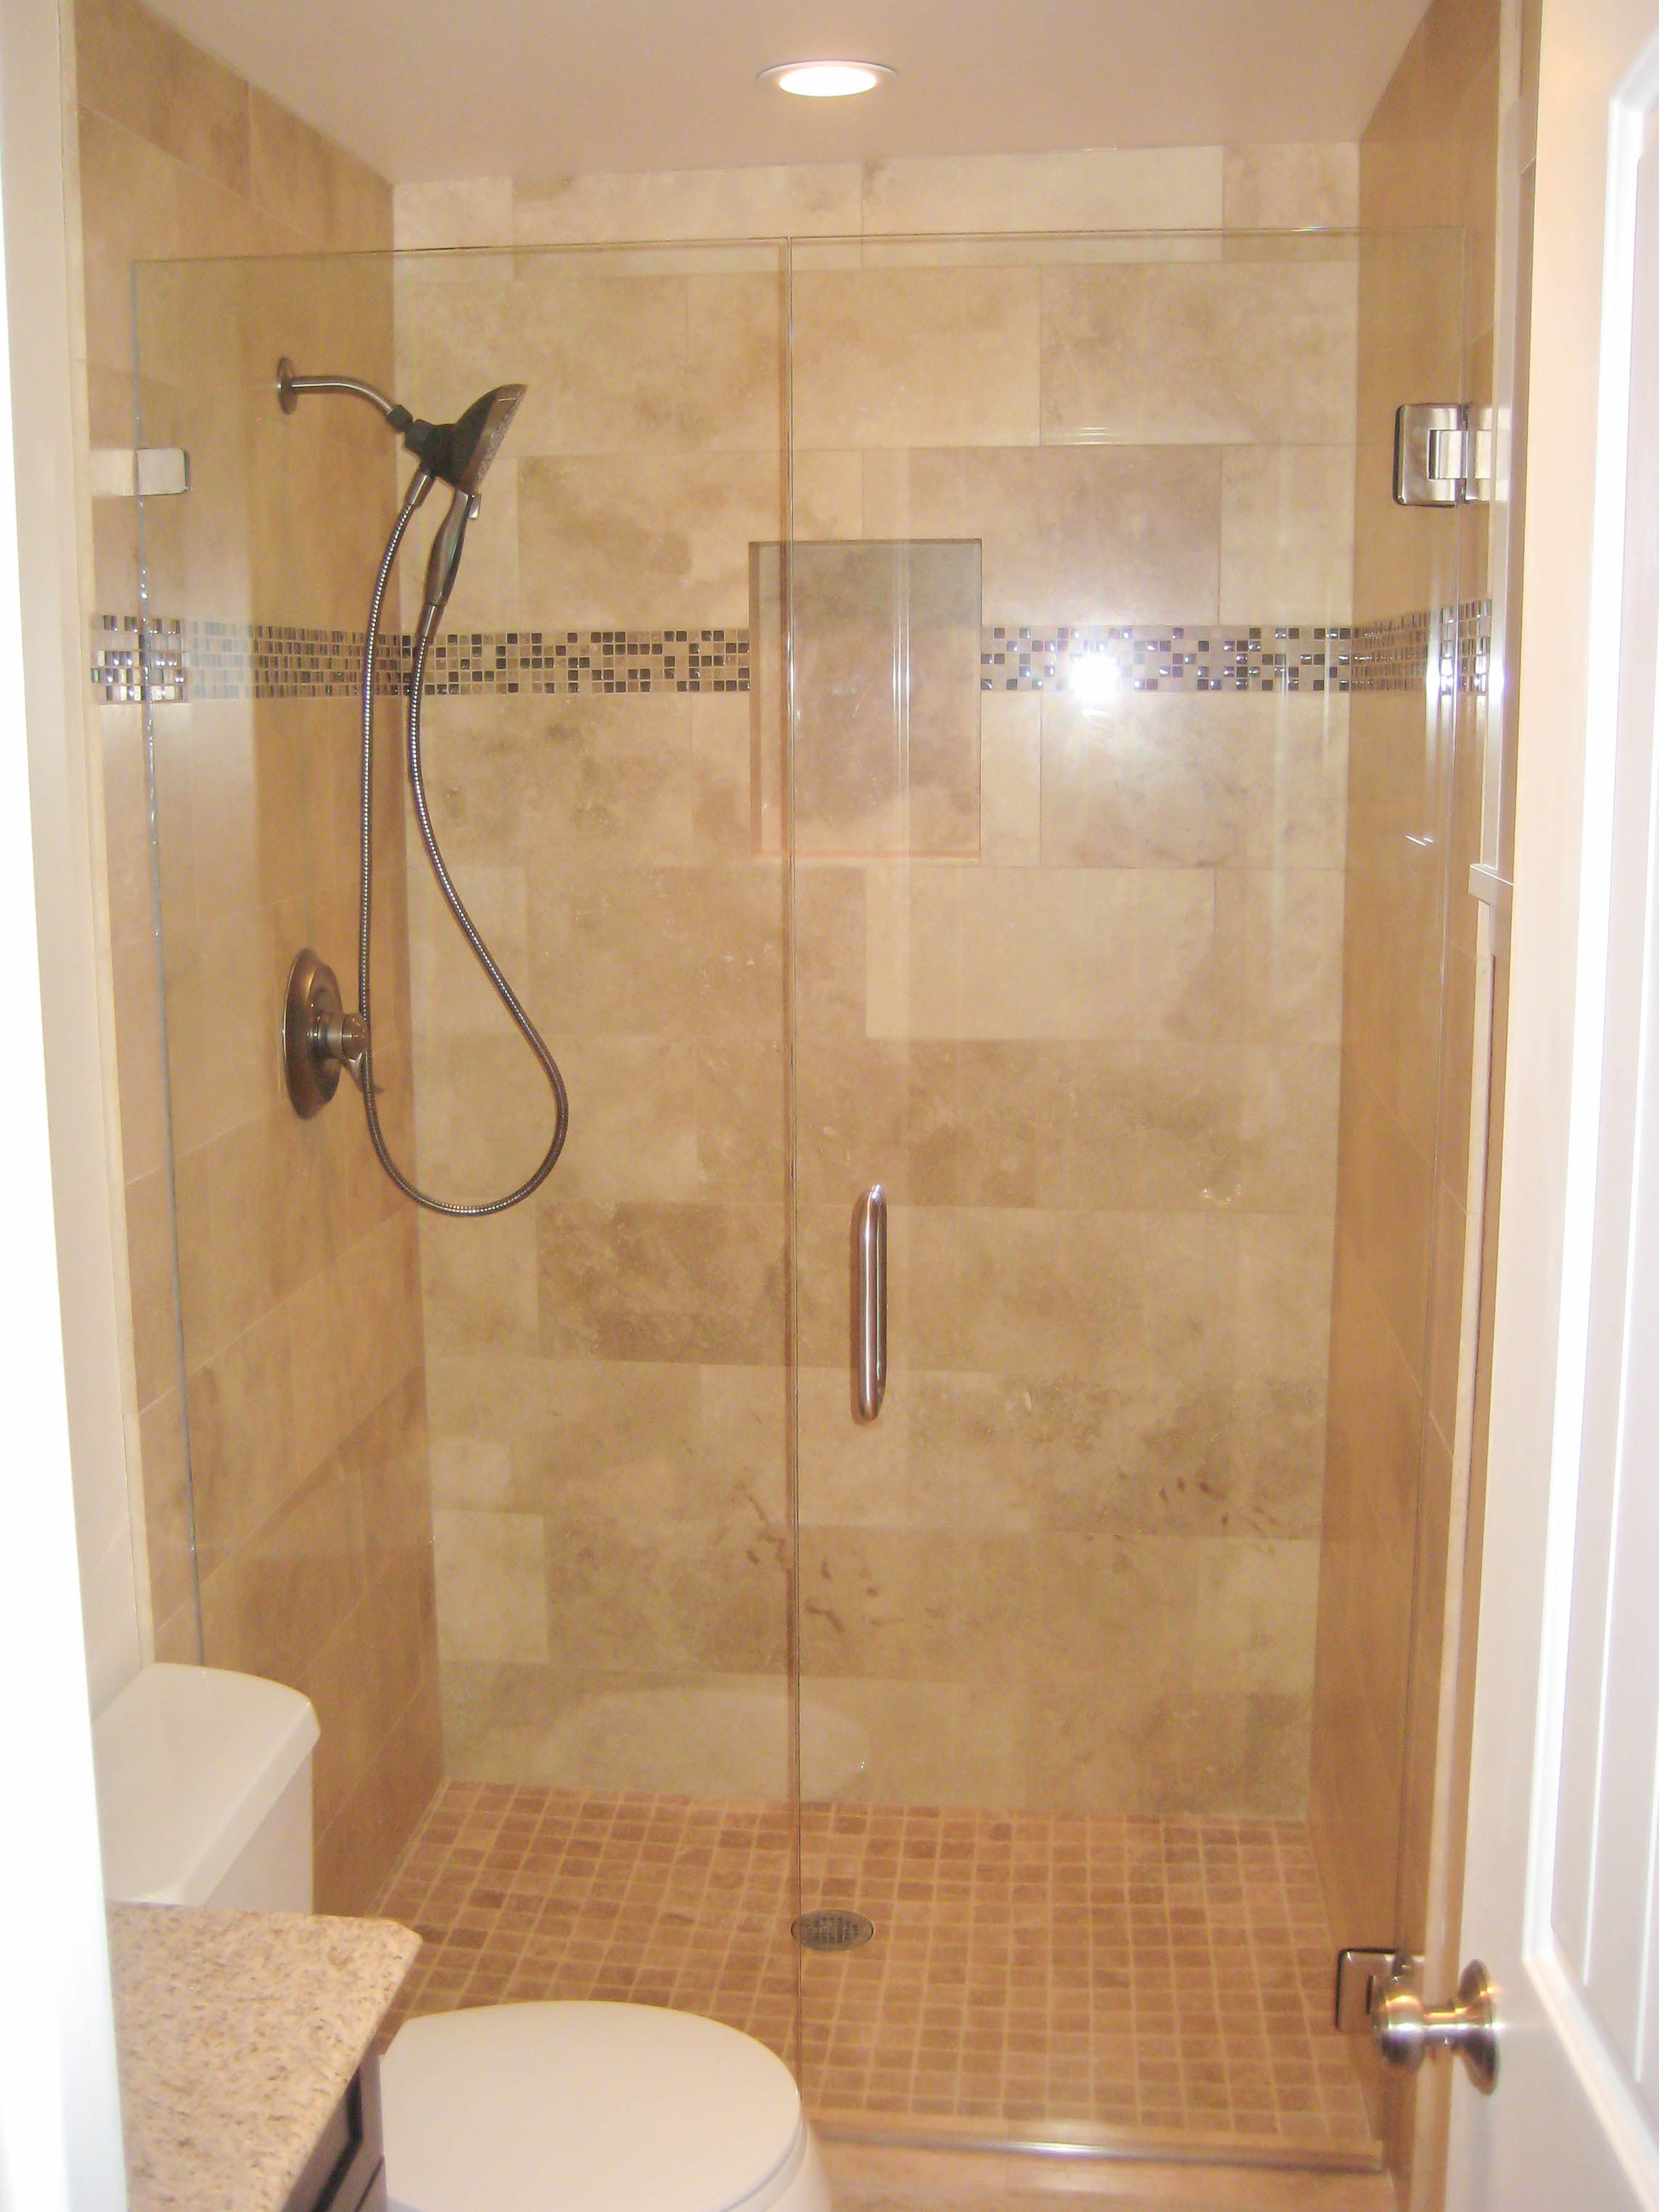 Bathroom Tile Installers Bathroom Showers Photos Seattle Tile Contractor Irc Tile Services